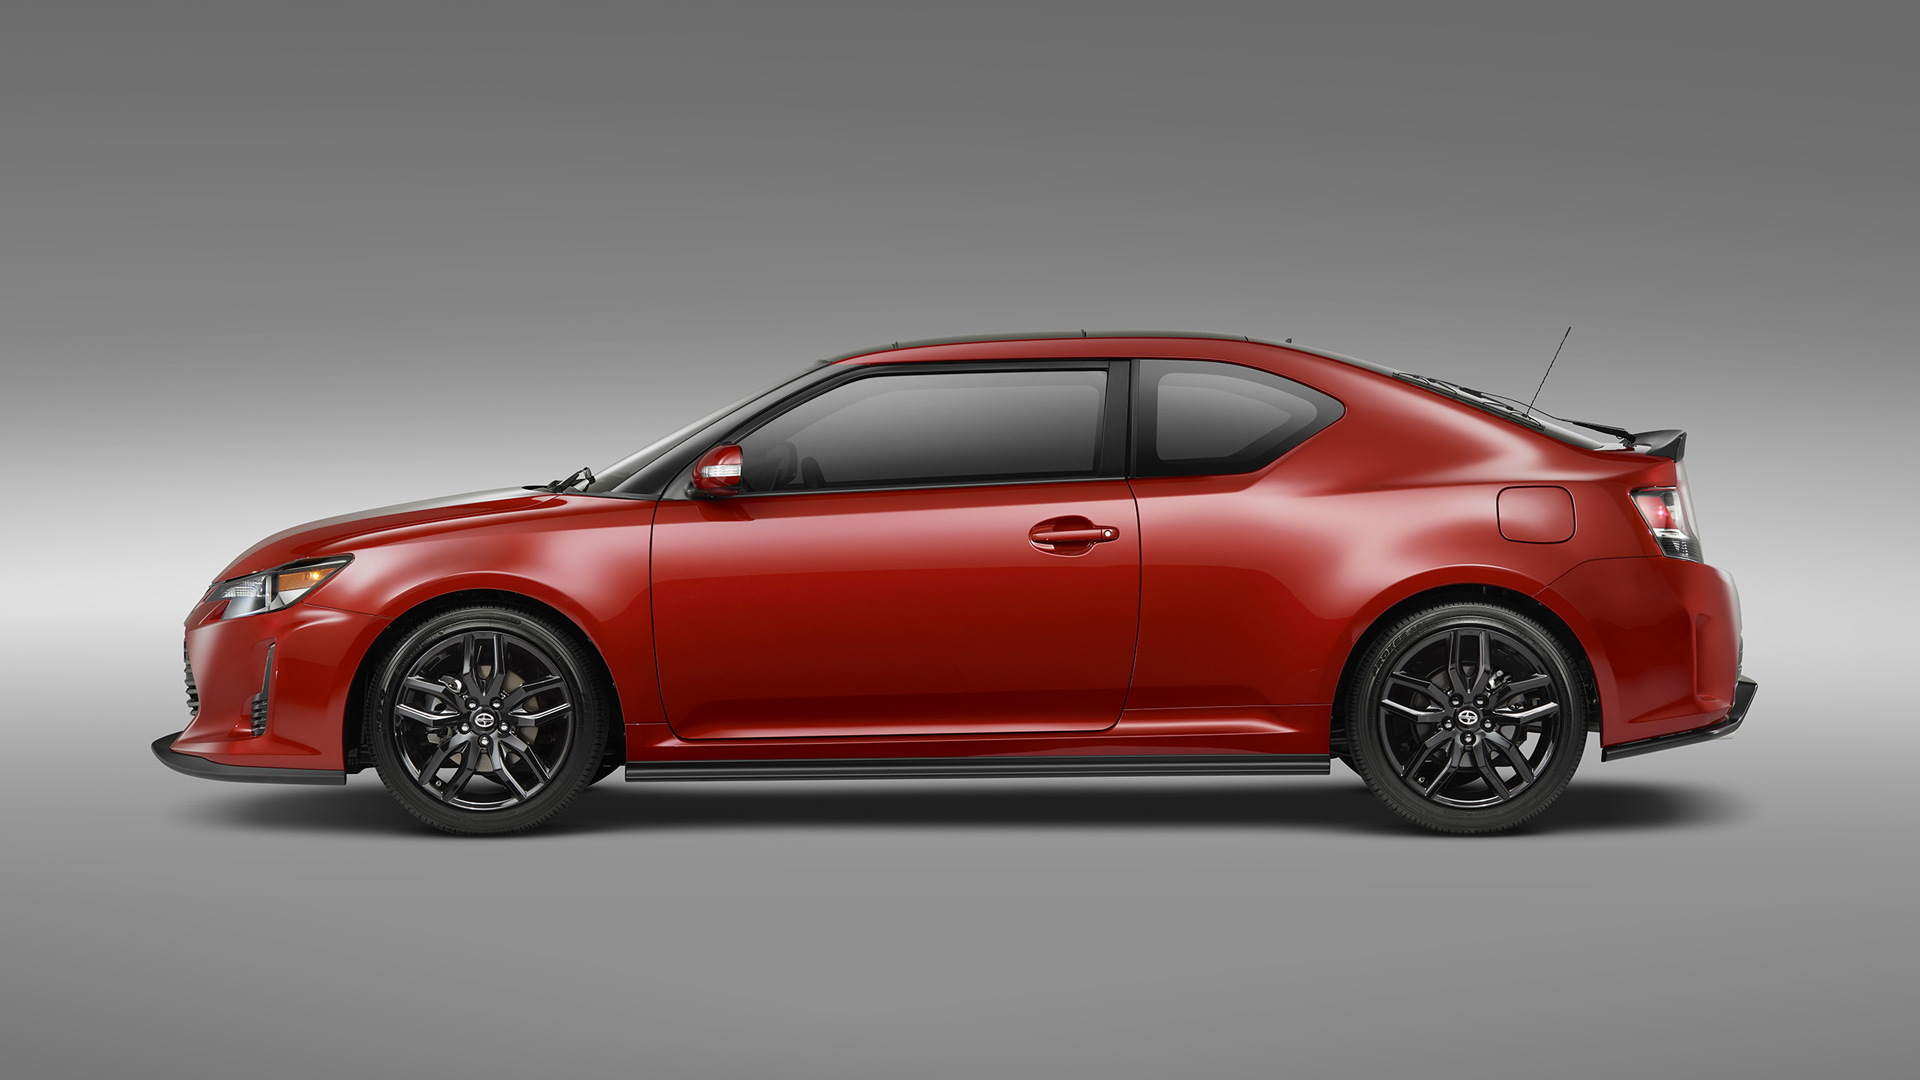 2016 Scion Tc Goes Out With Tuner Flair  Racy Final